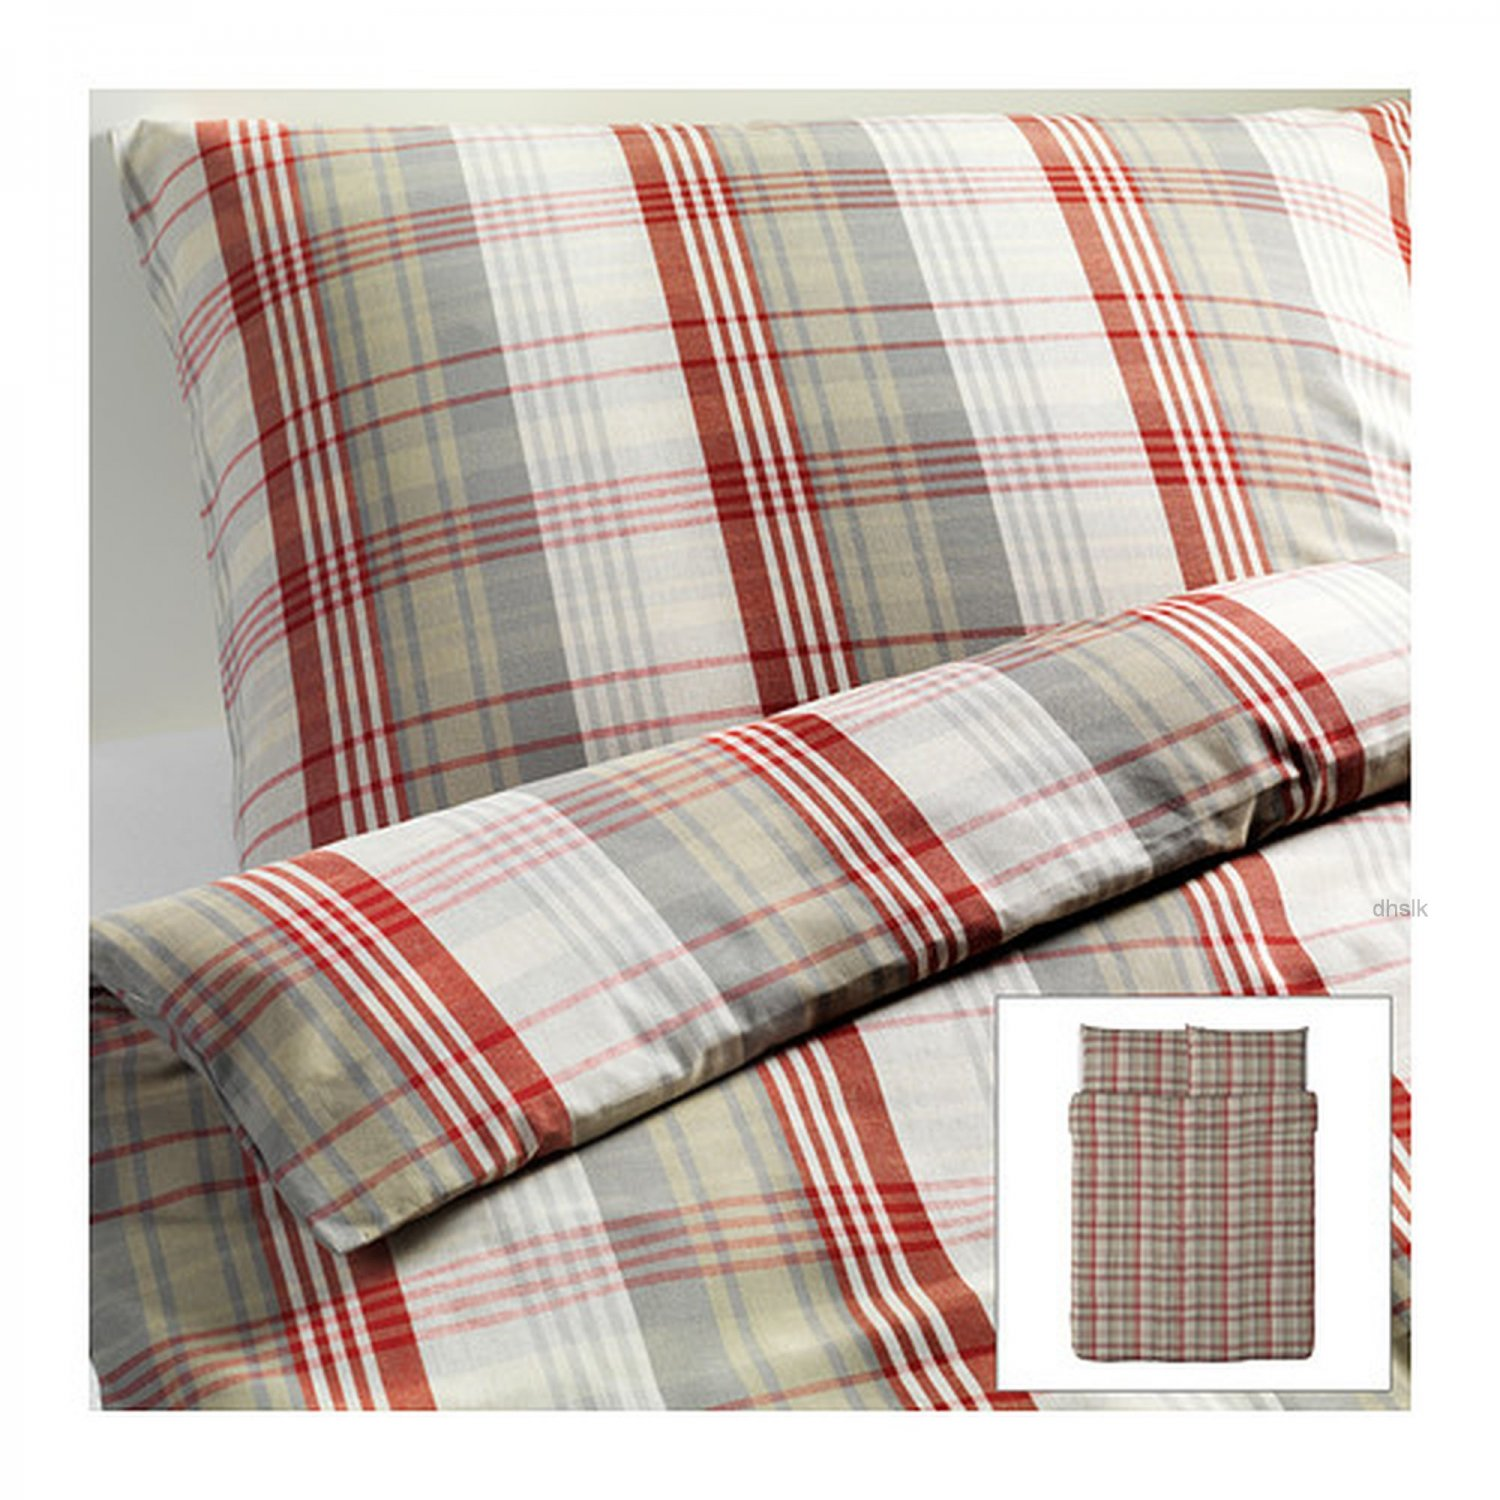 ikea benzy queen full duvet cover set red beige plaid yarn dyed soft. Black Bedroom Furniture Sets. Home Design Ideas